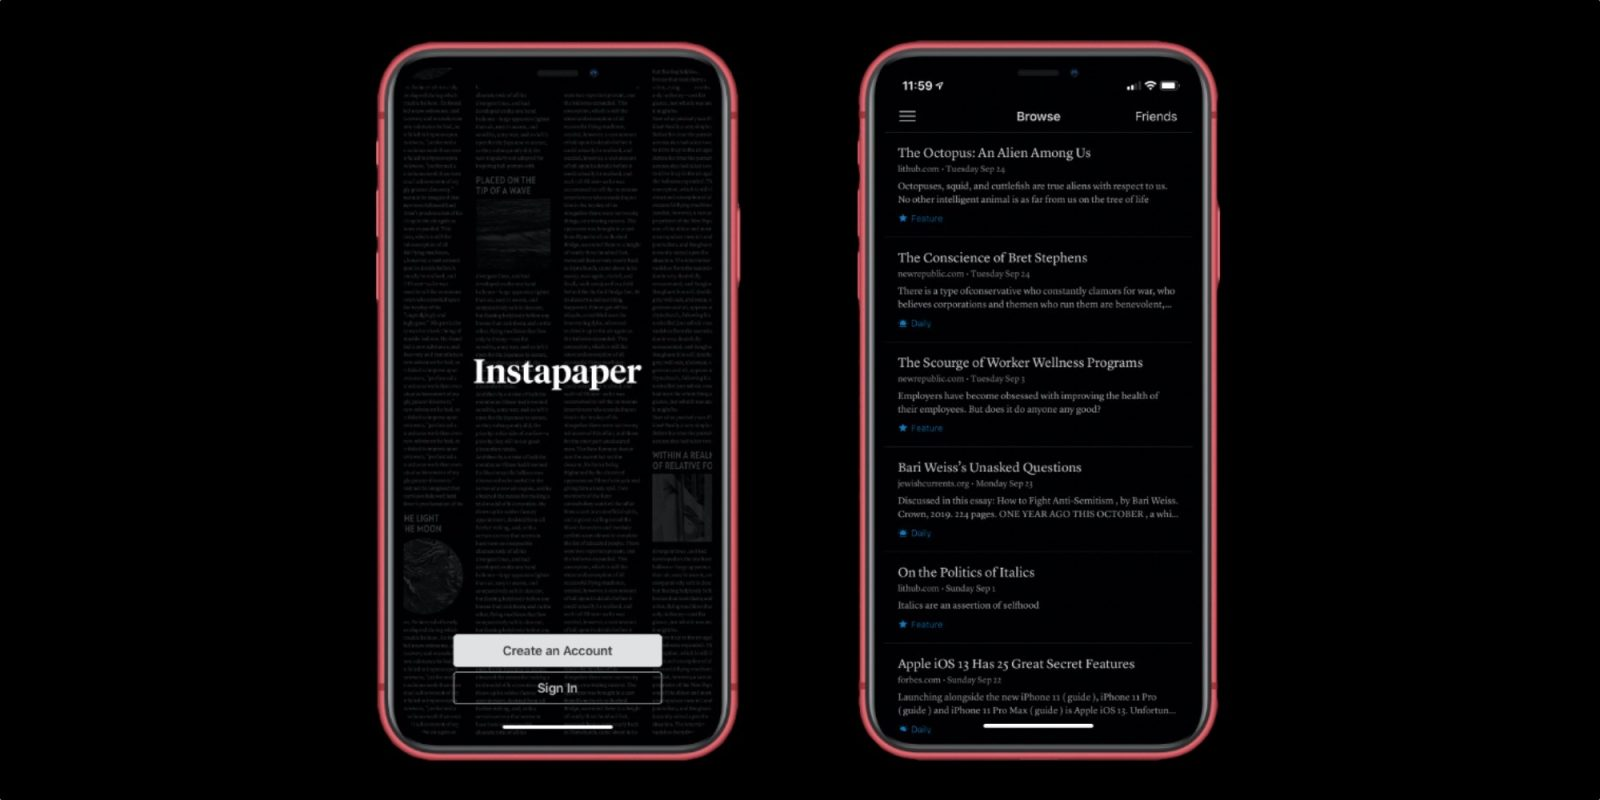 Instapaper for iOS adds Dark Mode support, expanded 'Tweet Shot' feature